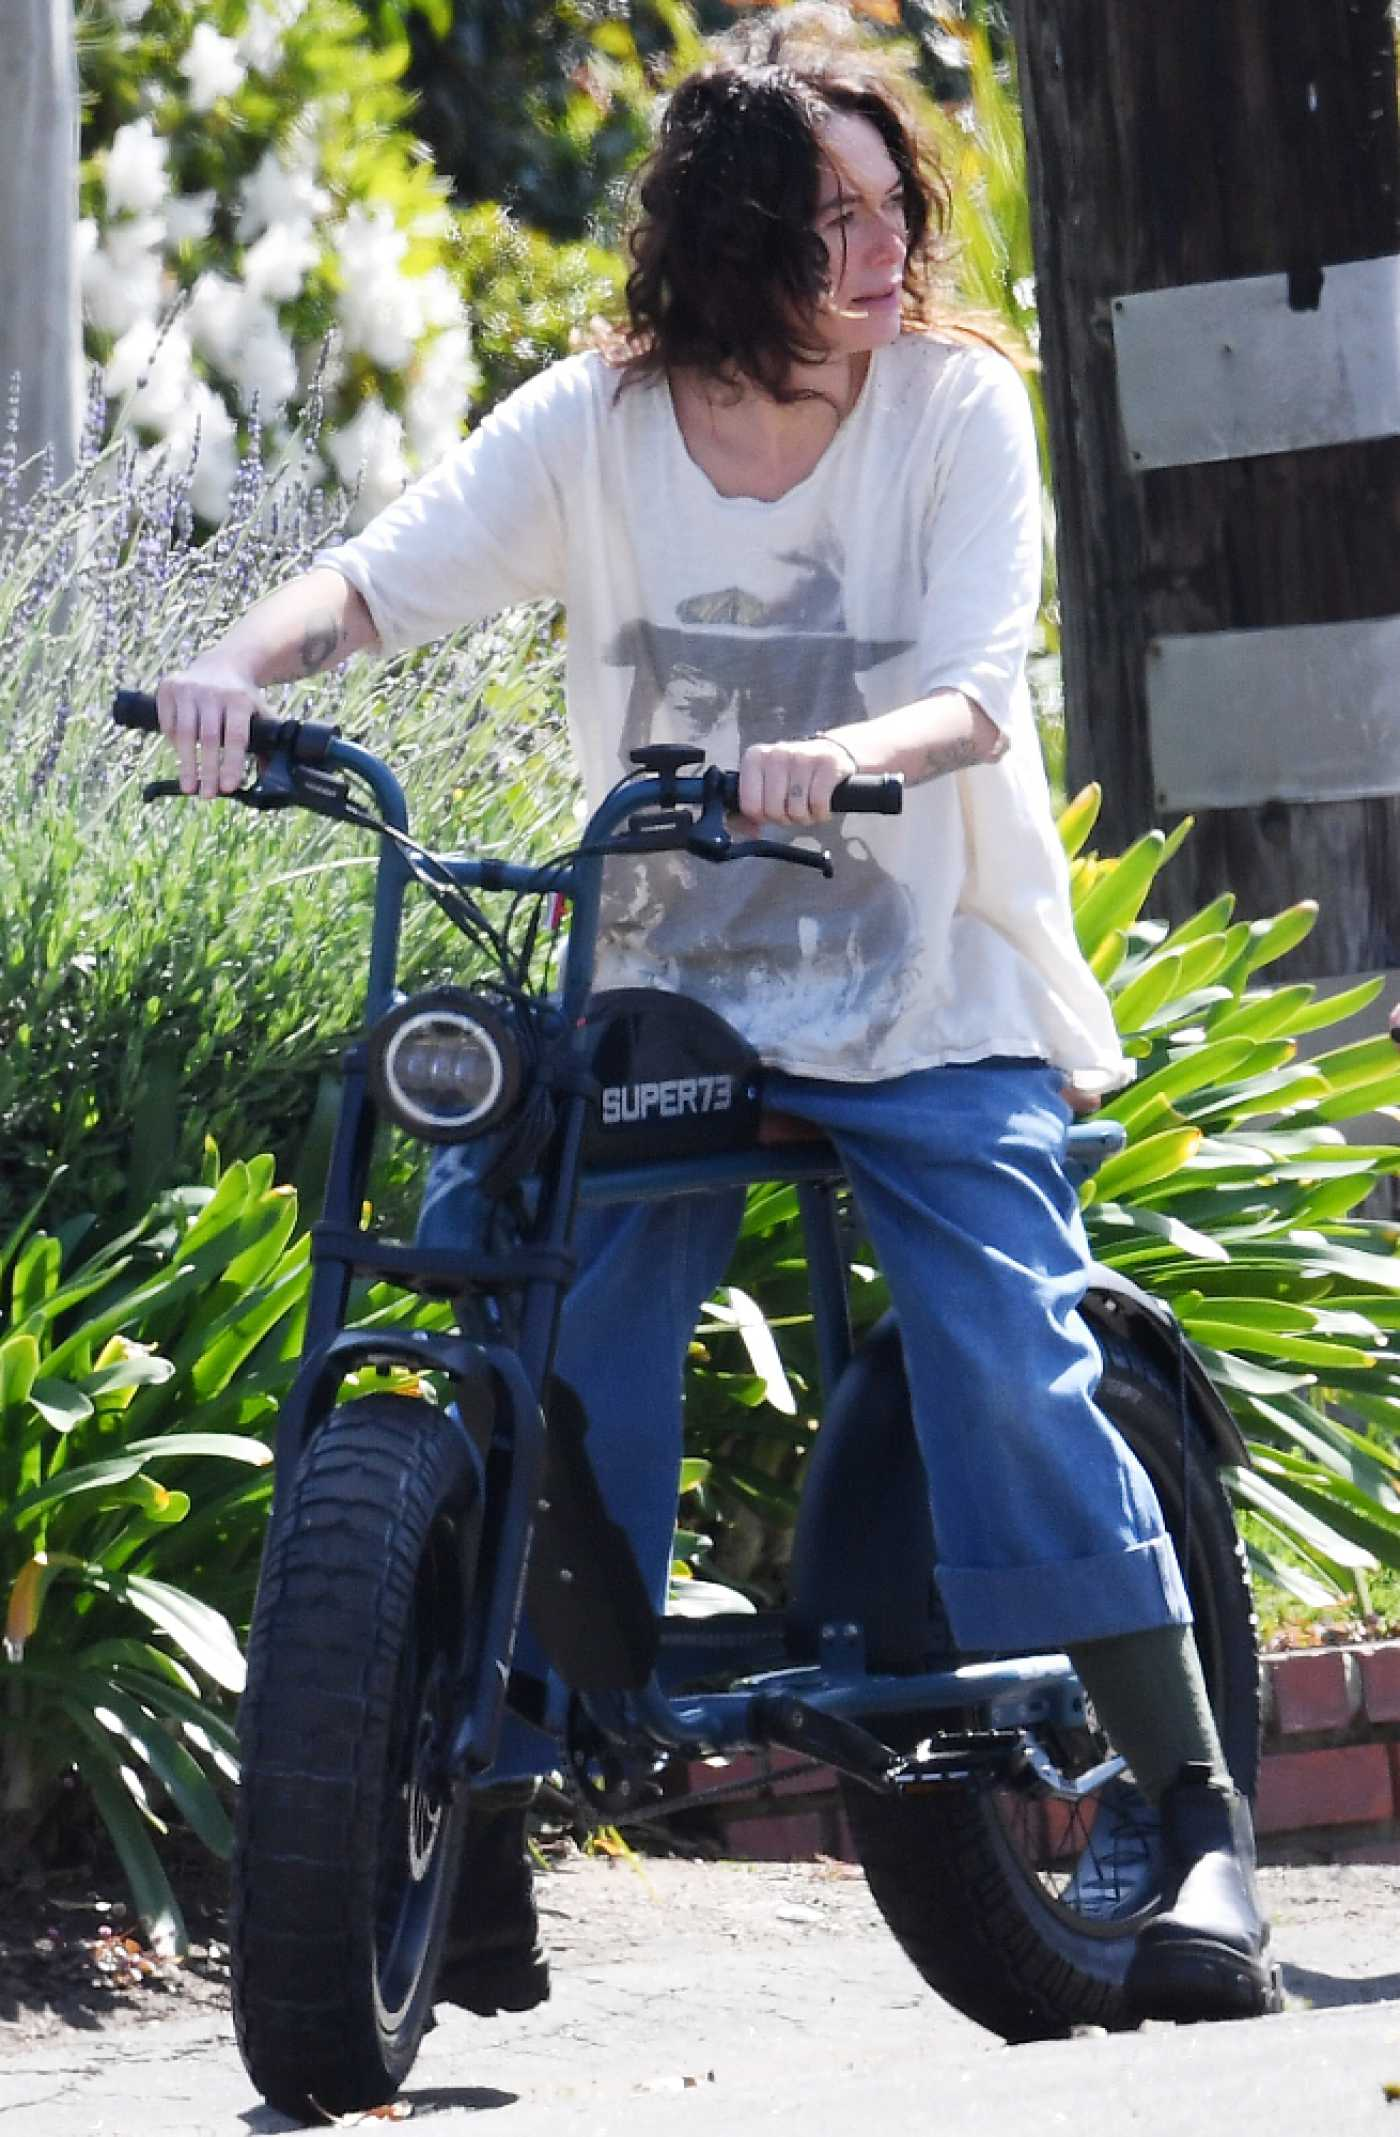 Lena Headey in a White Tee Rides Her Electric Motorbike Through the Streets of Los Angeles 03/16/2021